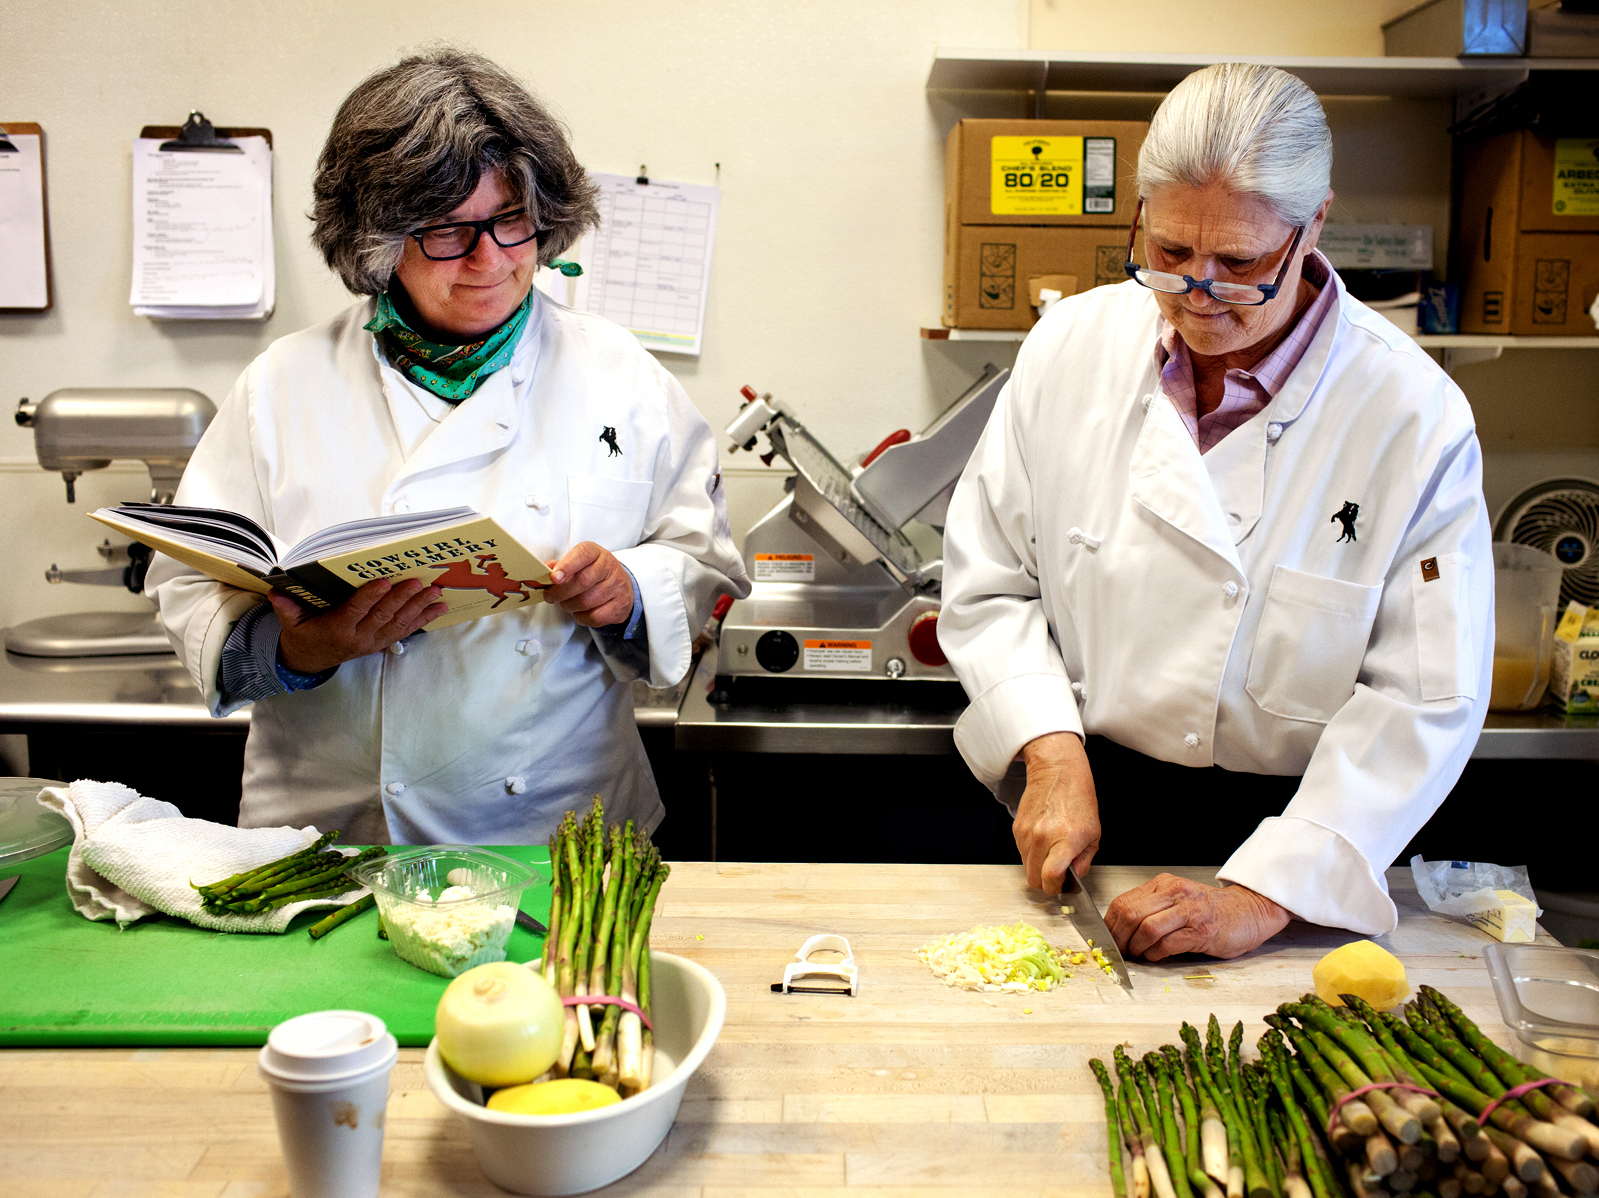 Sue Conley (left) and Peggy Smith, co-founders of Cowgirl Creamery, prepare their chilled spring garlic and asparagus soup with creme fraiche and fresh ricotta at Cowgirl Creamery in Point Reyes Station, Calif. Photo: Tim Hussin for NPR